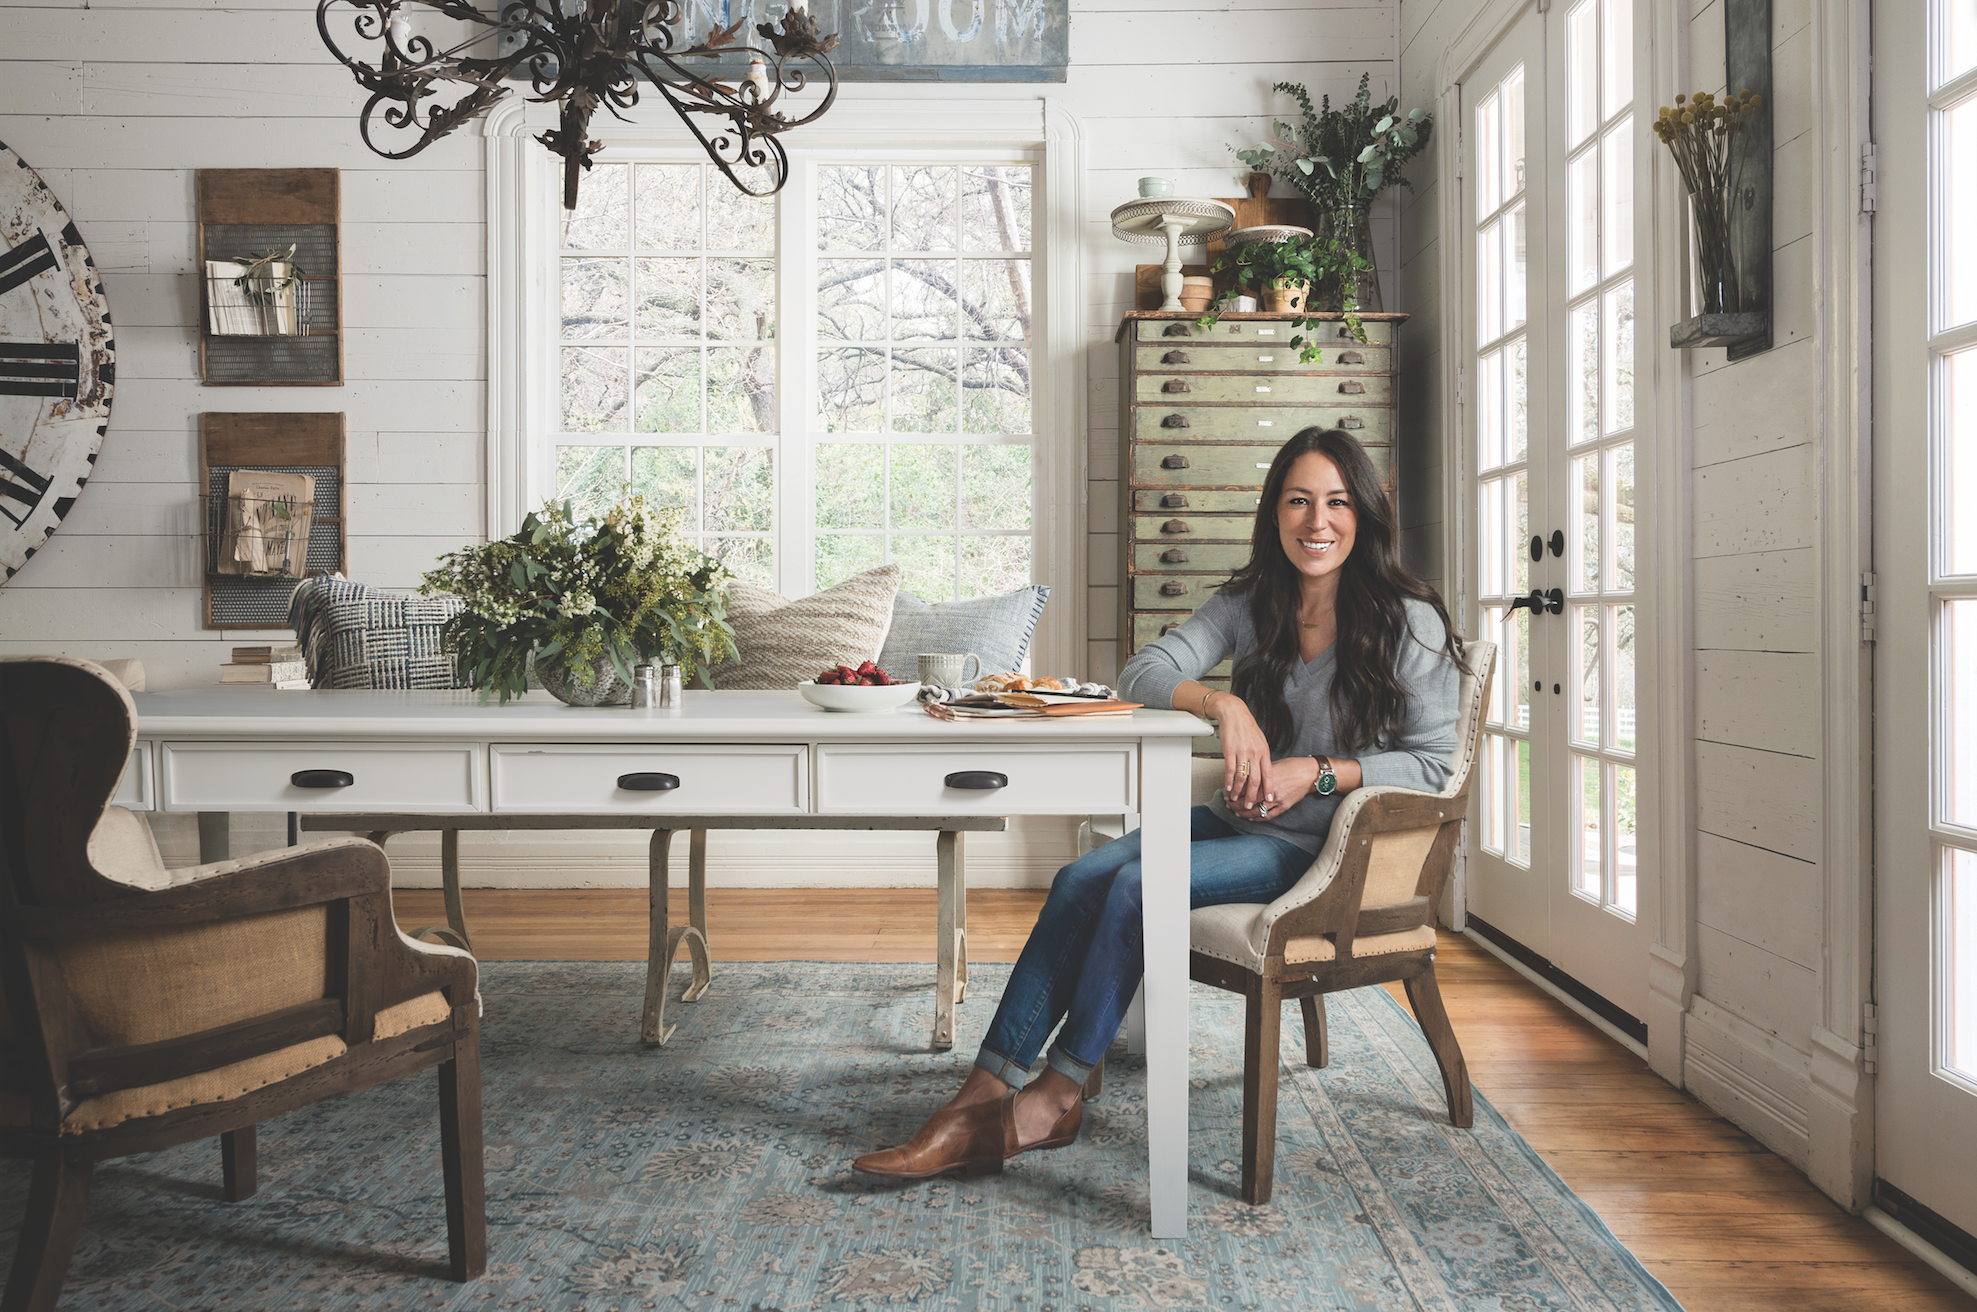 Magnolia Home by Joanna Gaines - Dining Image